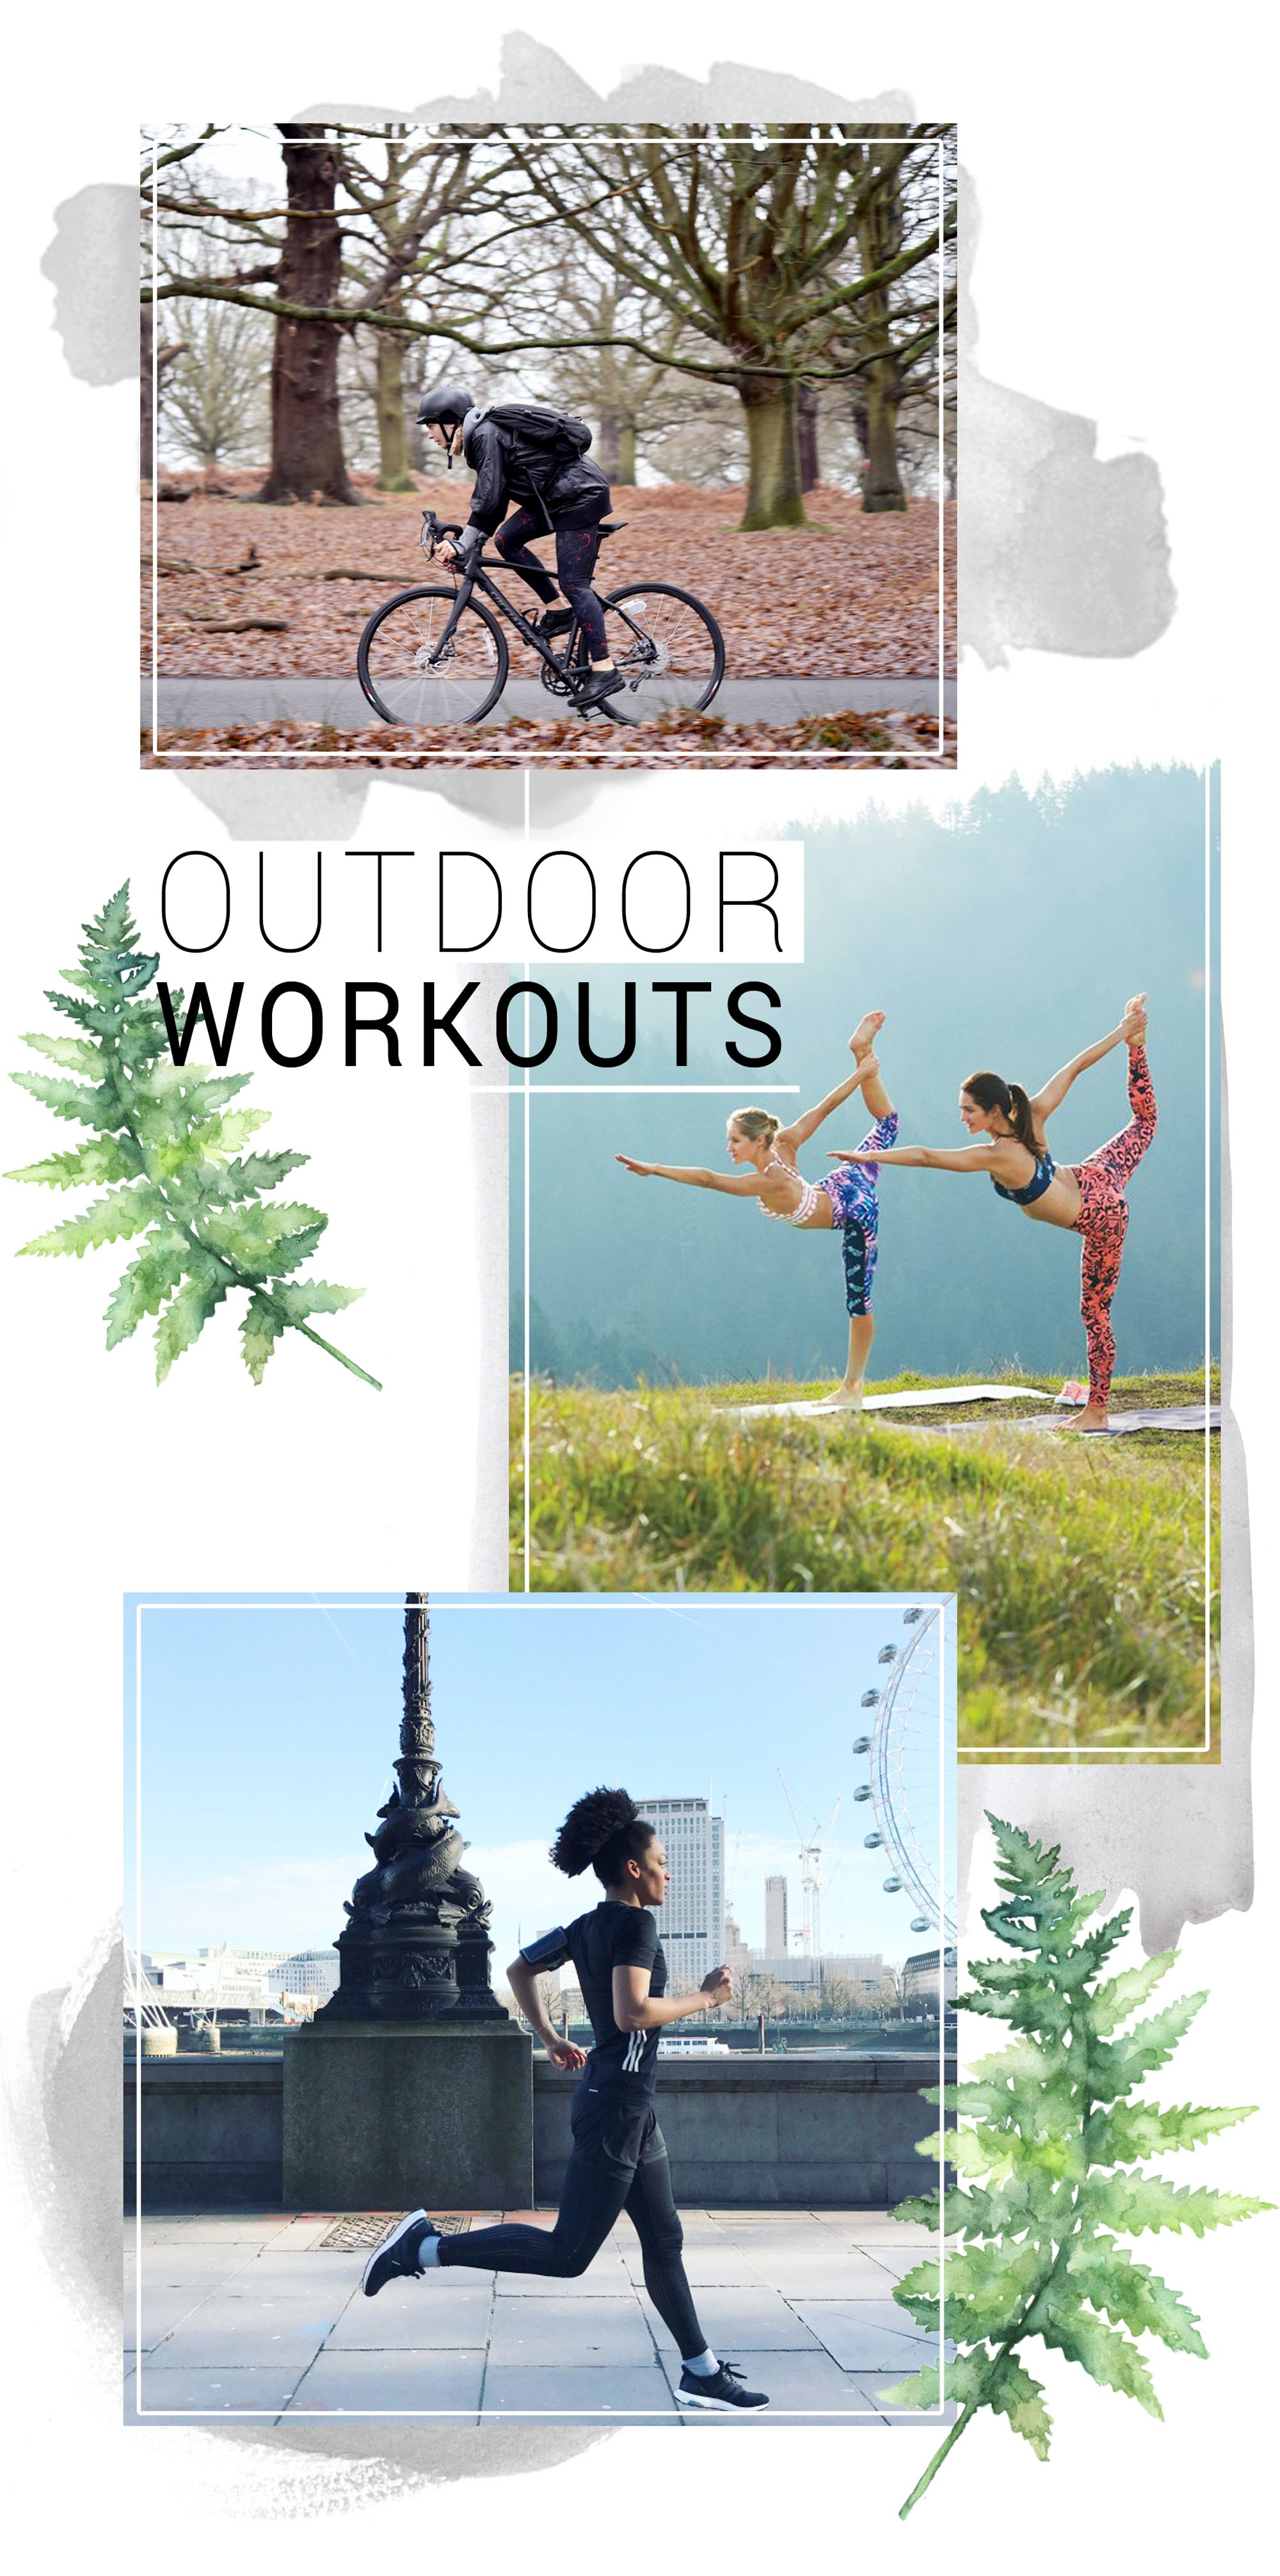 5 Outdoor Workout Ideas for Free Part 1